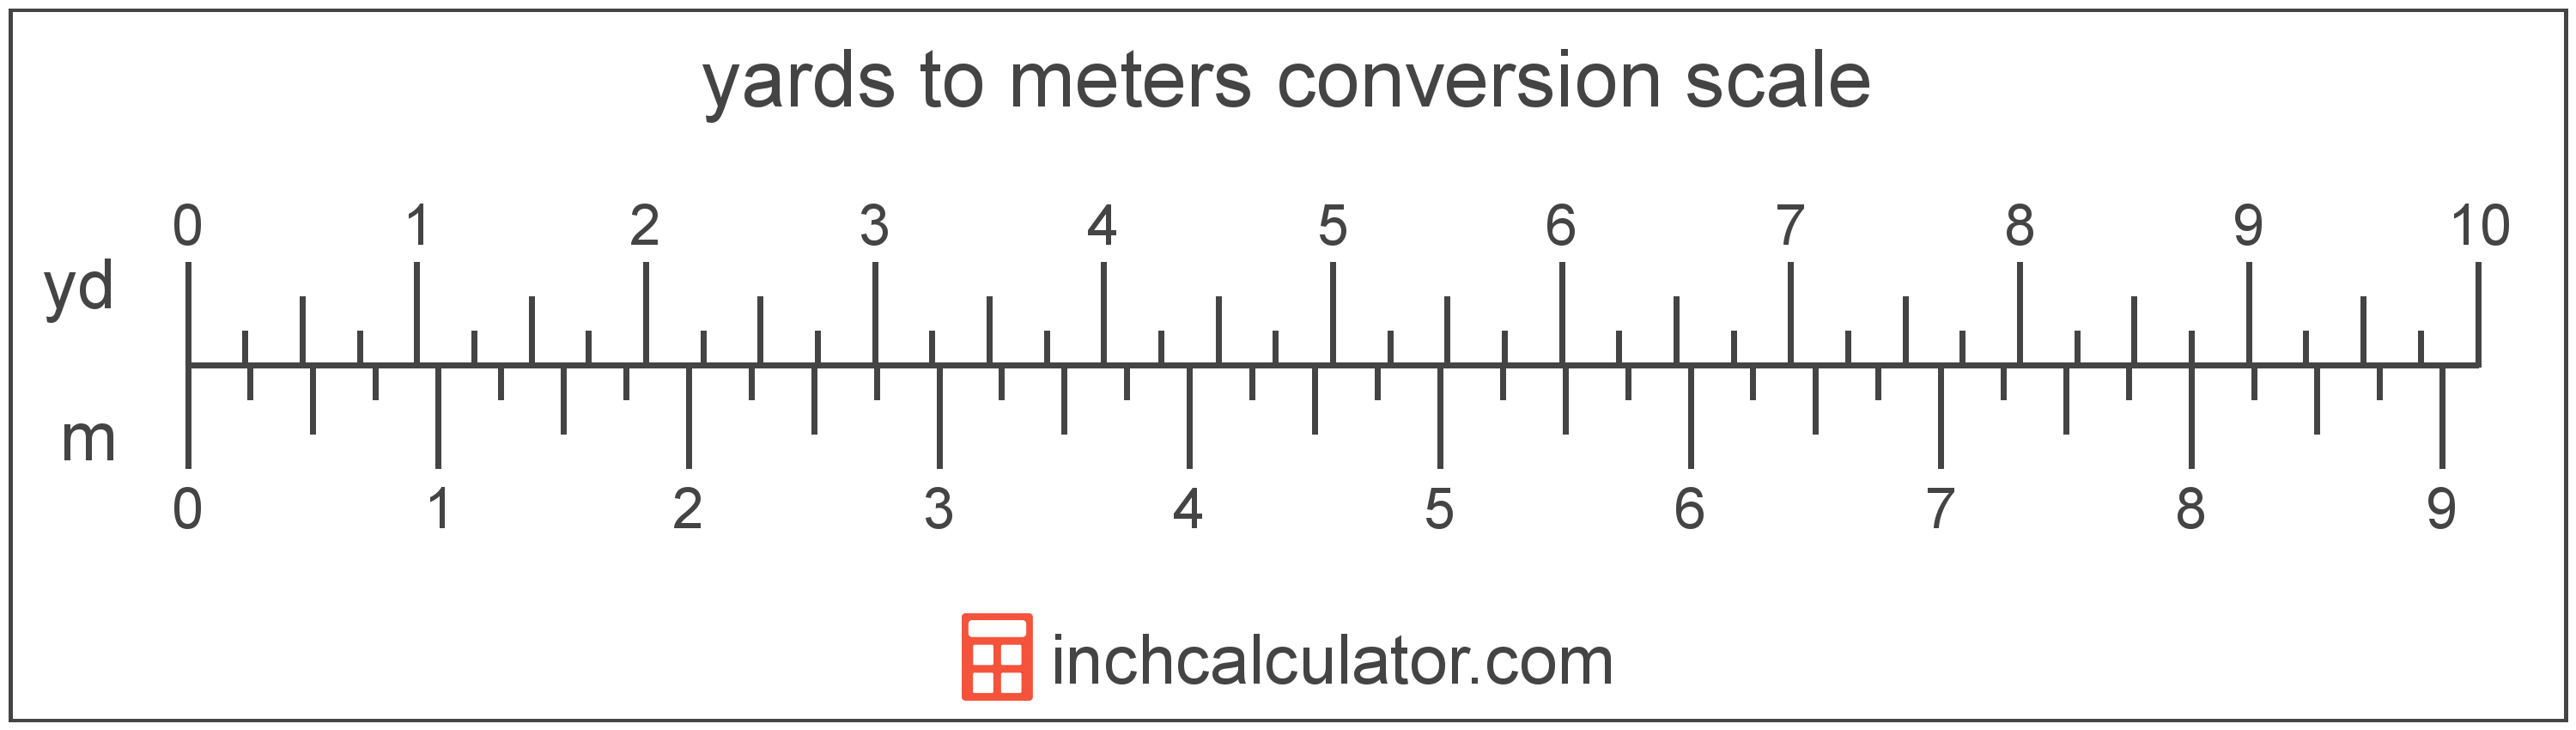 conversion scale showing yards and equivalent meters length values